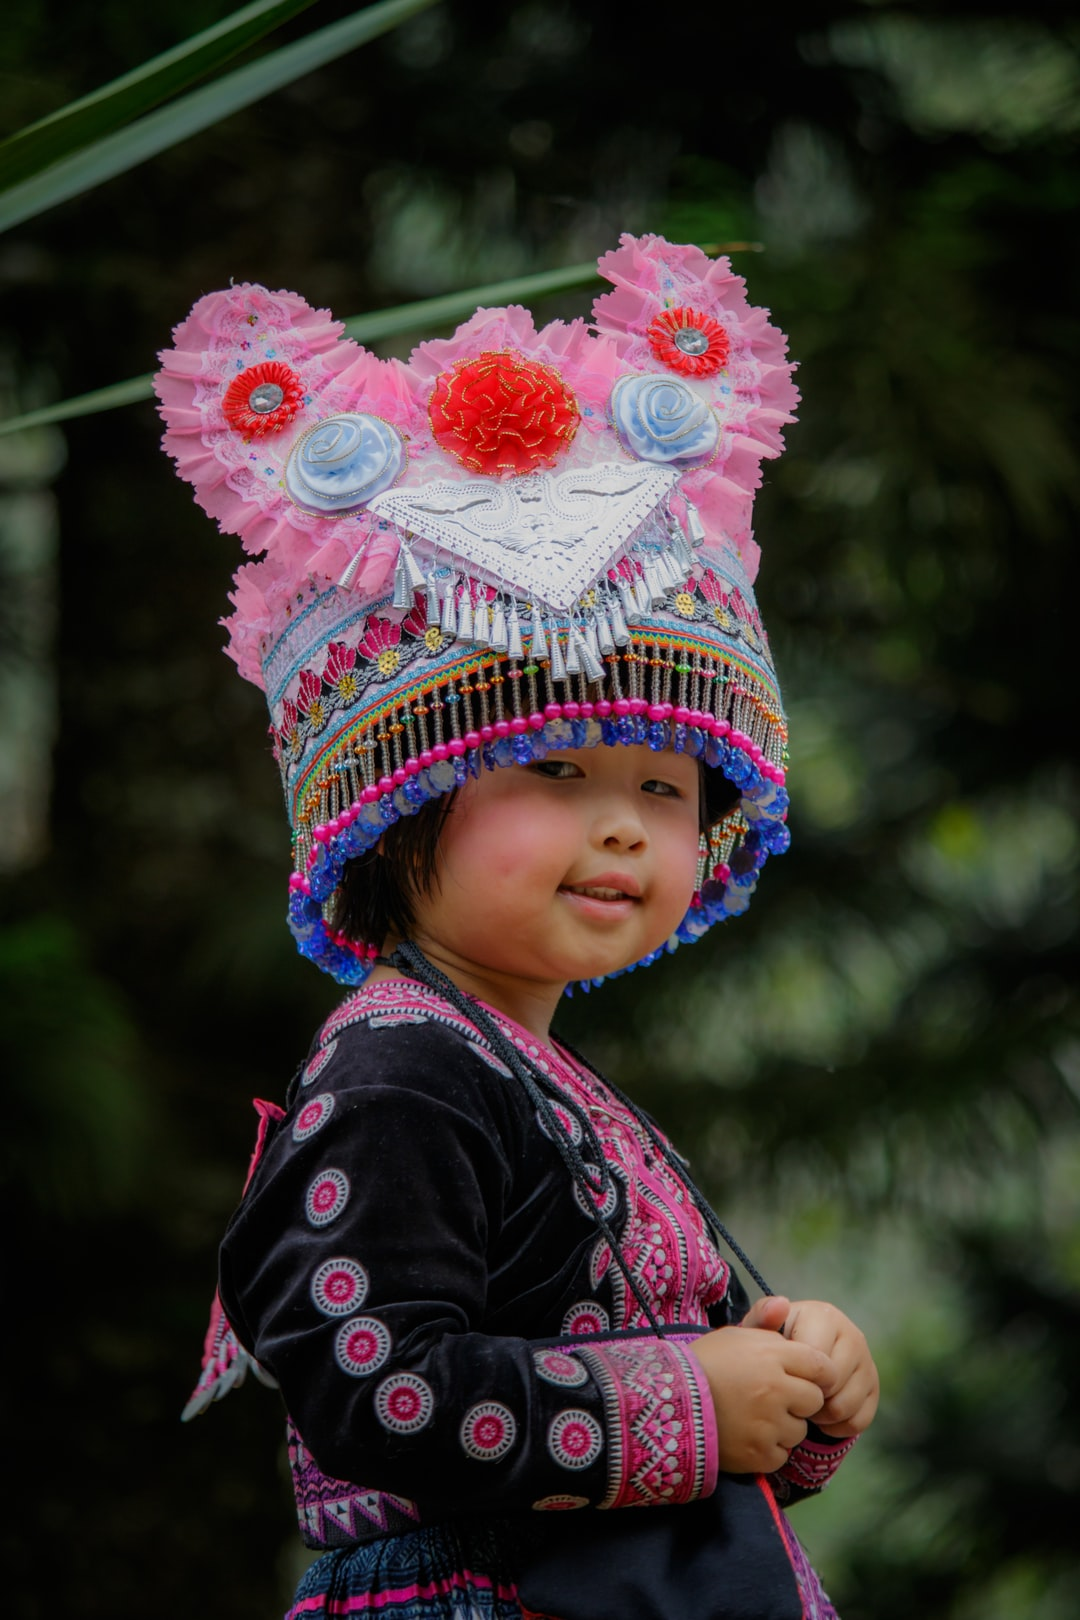 I took this photo of the young girl posing for photos at Doi Suthep in Chang Mai Thailand.  These young girls pose for photos to bring in money to the family. The young girls mother was watching over her and her two sisters. She is wearing the Traditional and very colourful Thai dress for the Chang Mai region of Thailand.